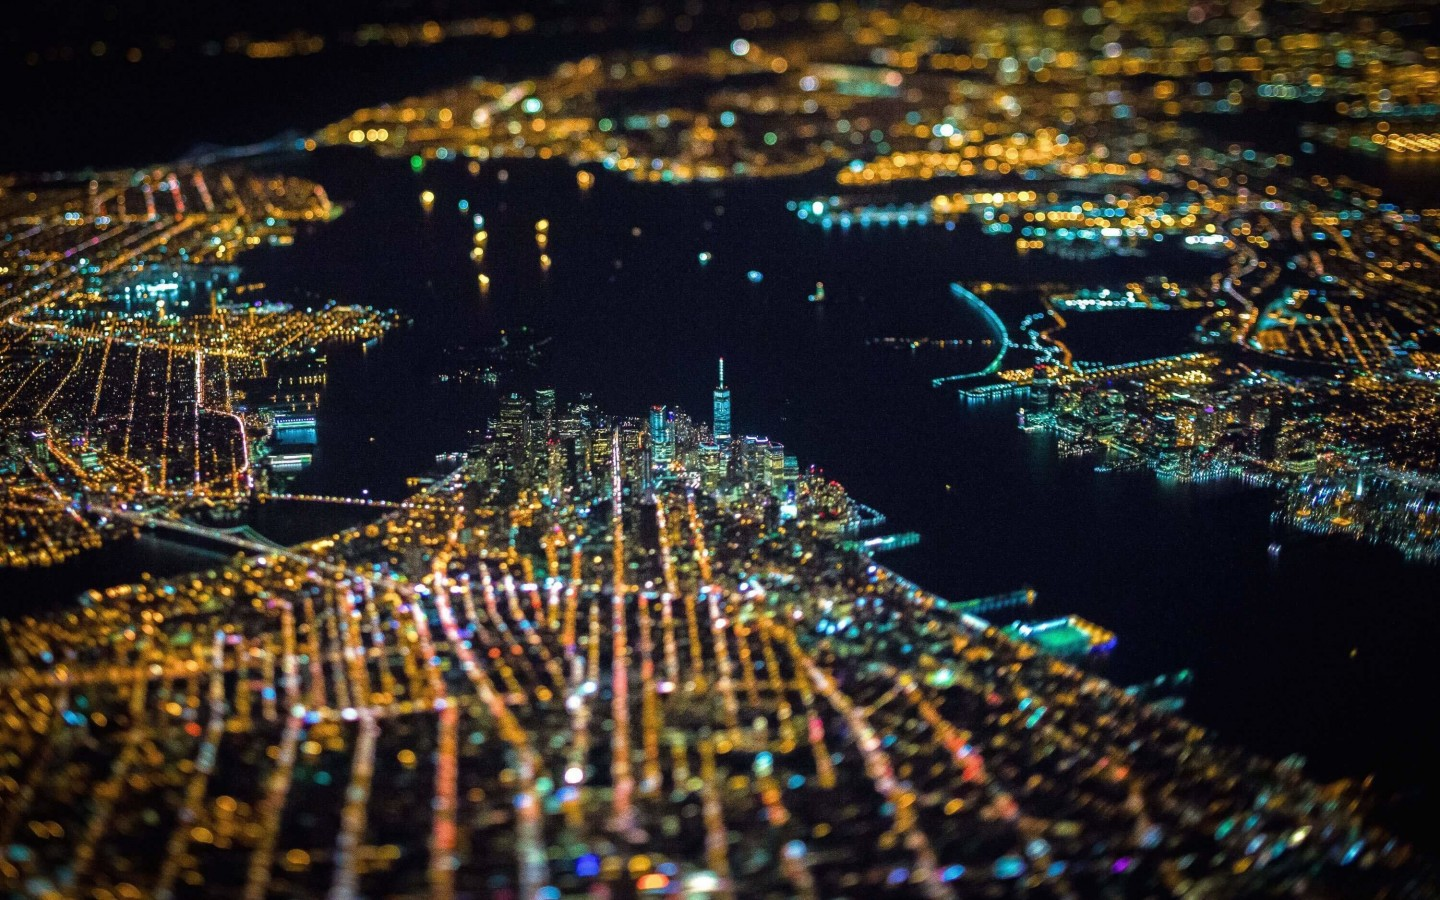 New York City From Above Wallpaper for Desktop 1440x900